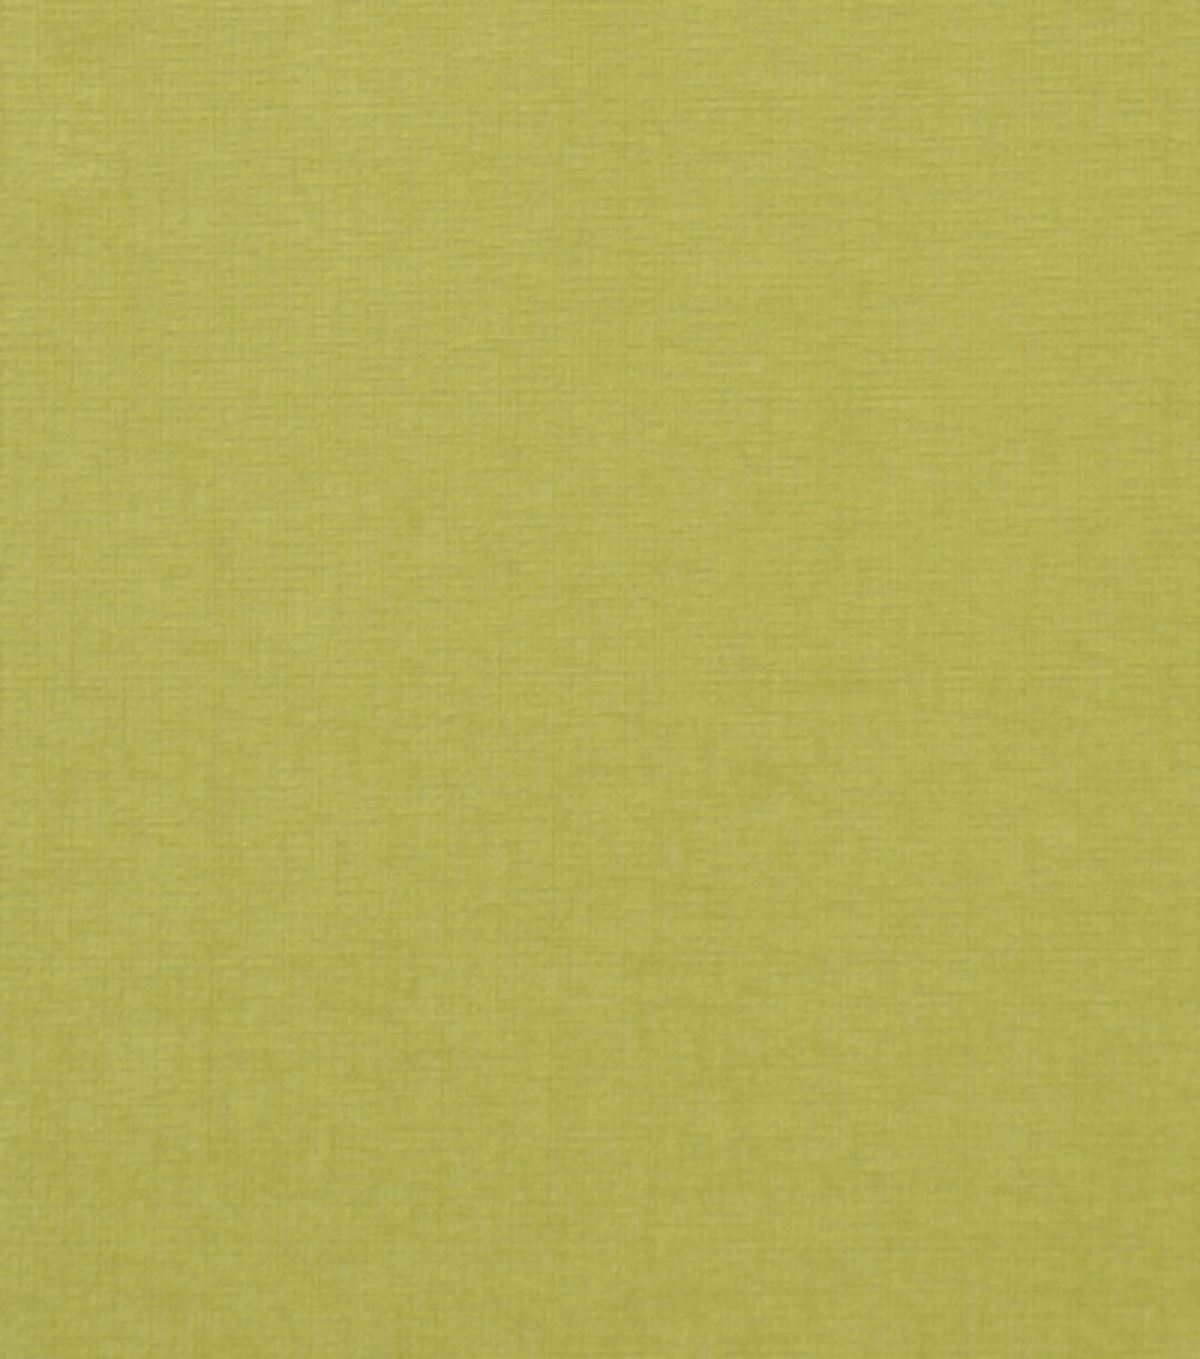 Home Decor 8\u0022x8\u0022 Fabric Swatch-Covington Hanson 26 Meadow